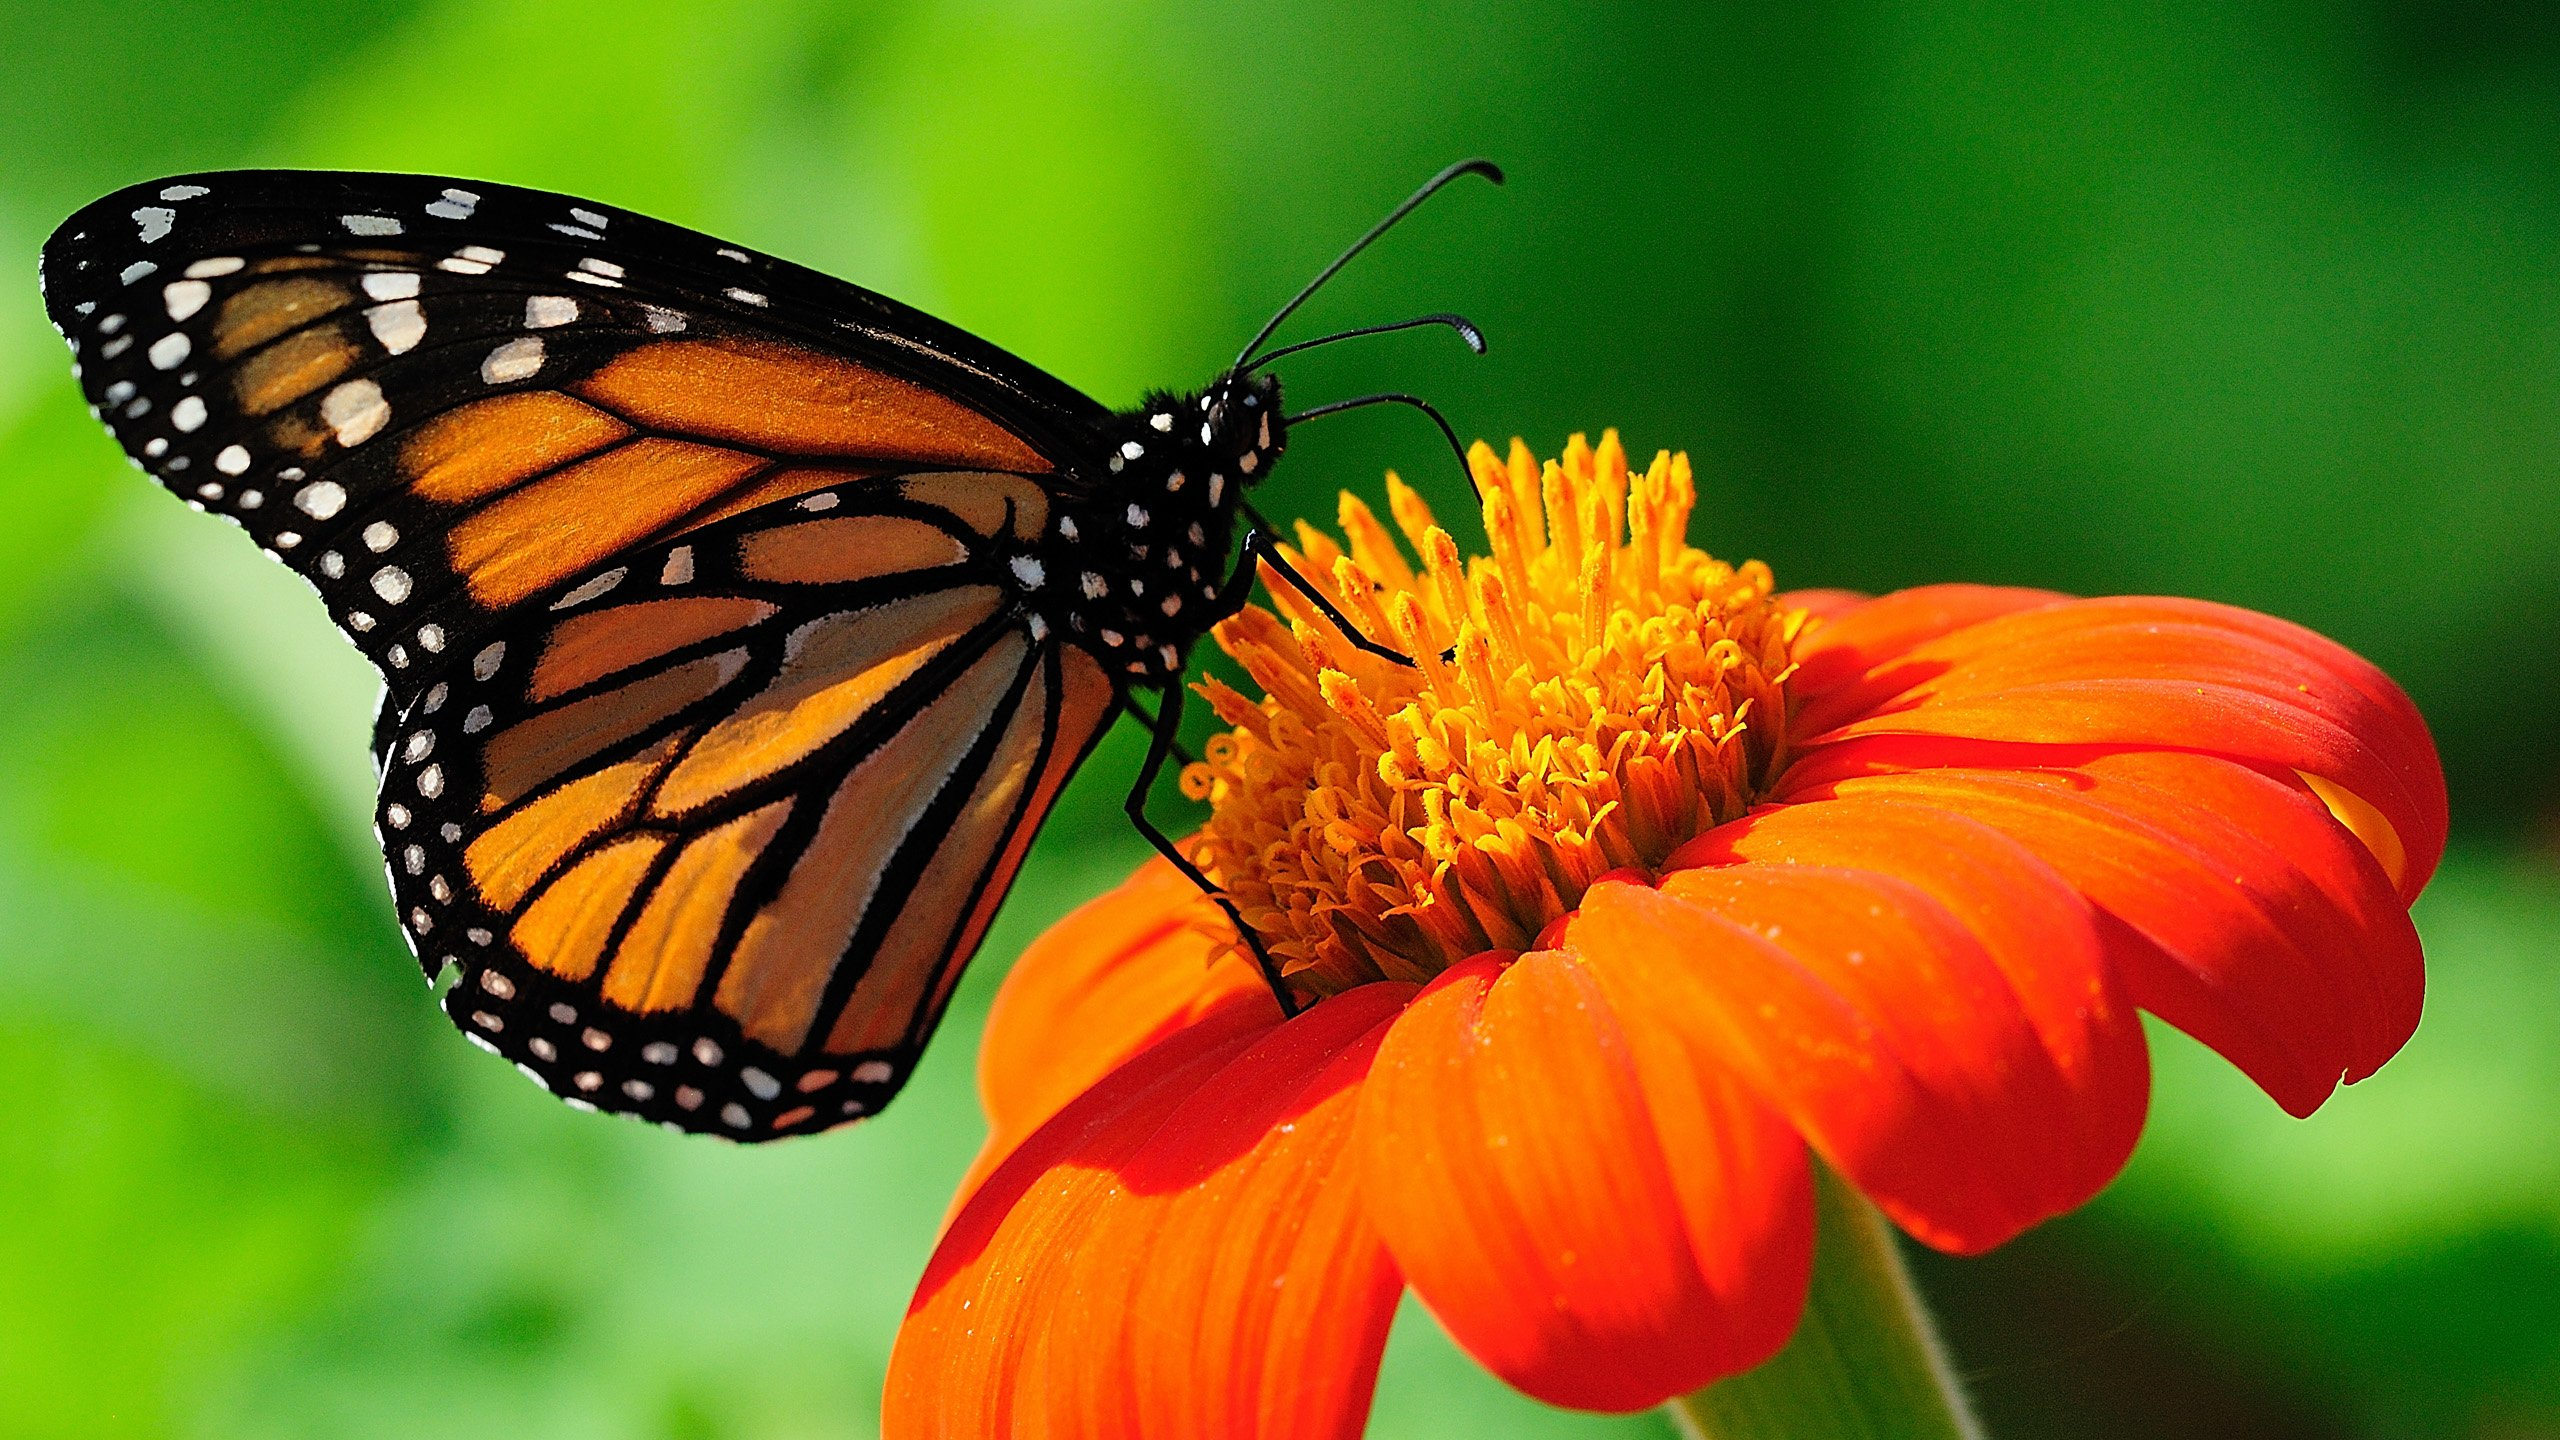 Monarch Butterfly Wallpaper For Dekstop Backgr 37837 Full HD Wallpaper 2560x1440